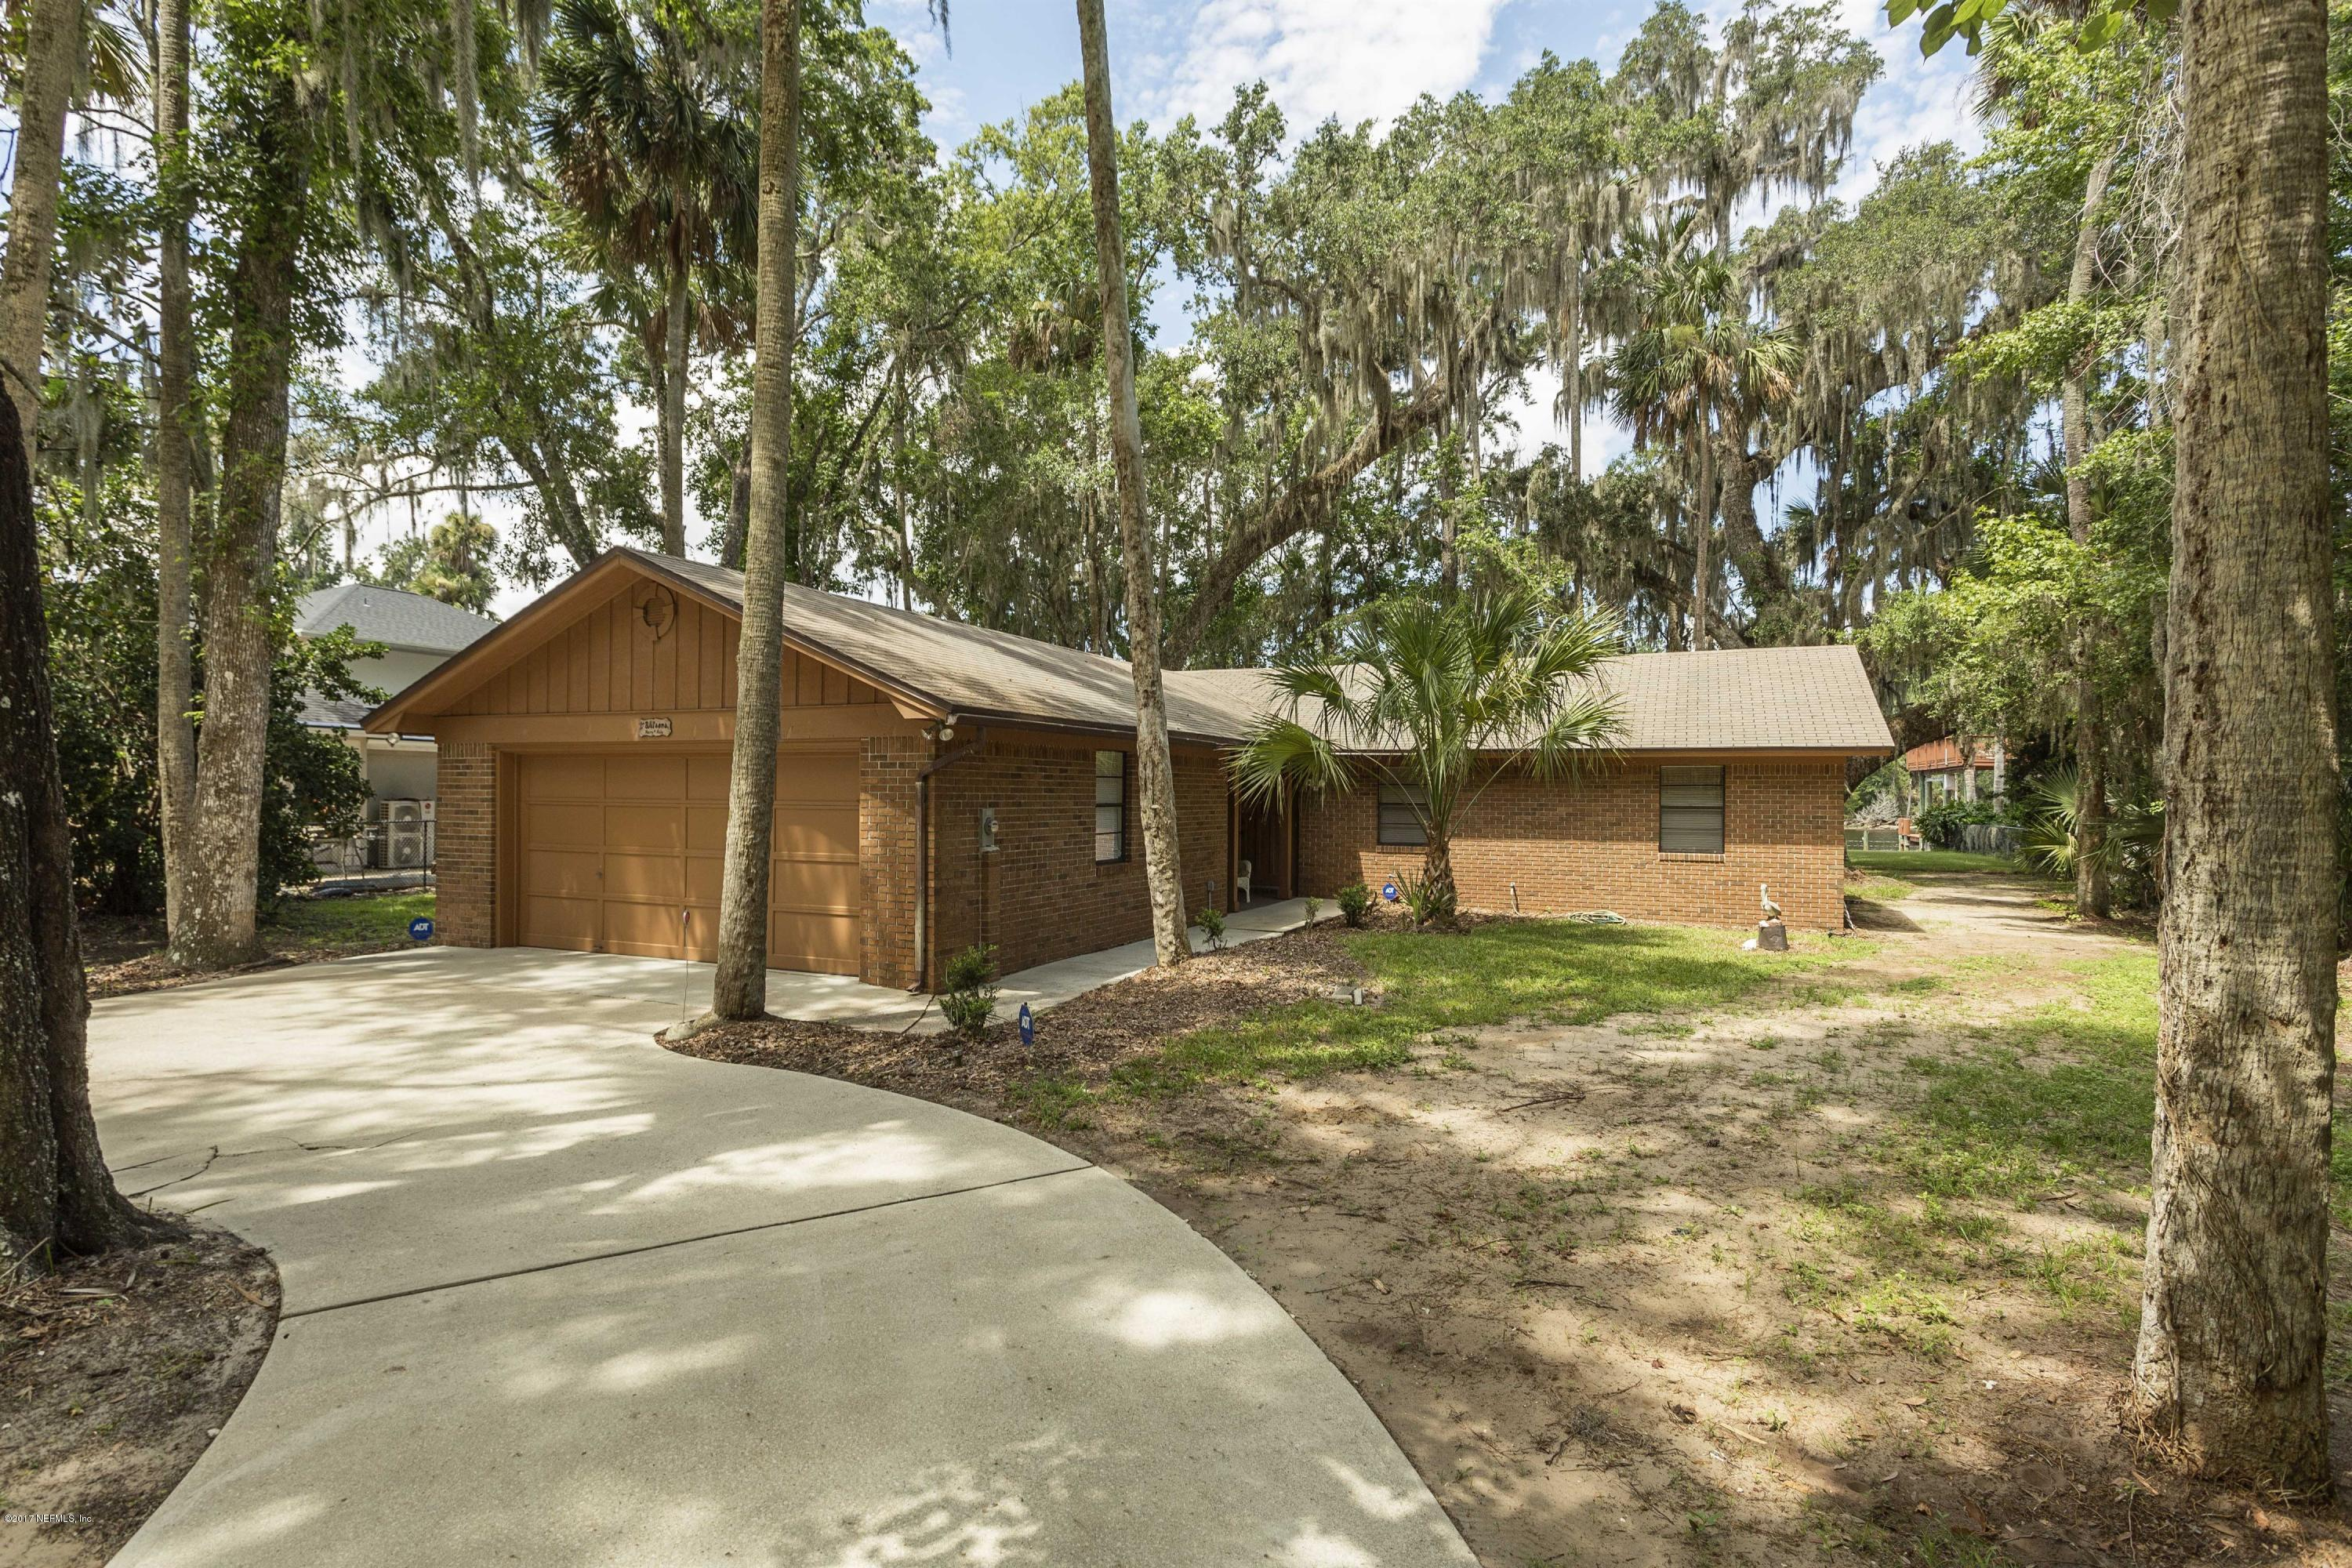 37 ROSCOE, PONTE VEDRA BEACH, FLORIDA 32082, 4 Bedrooms Bedrooms, ,3 BathroomsBathrooms,Residential - single family,For sale,ROSCOE,896547